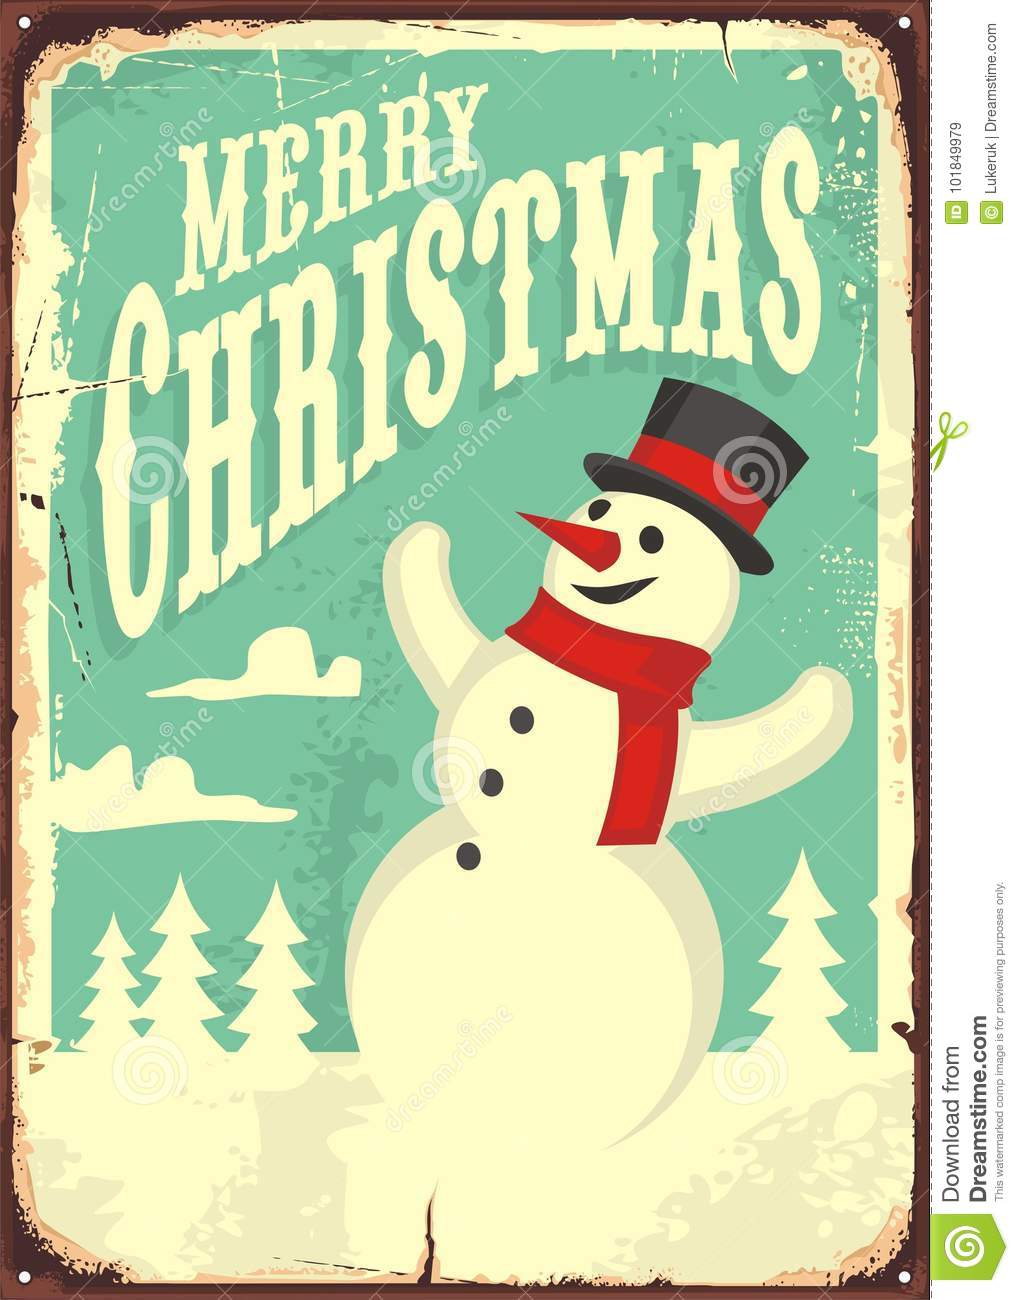 Vintage Christmas sign stock vector. Illustration of